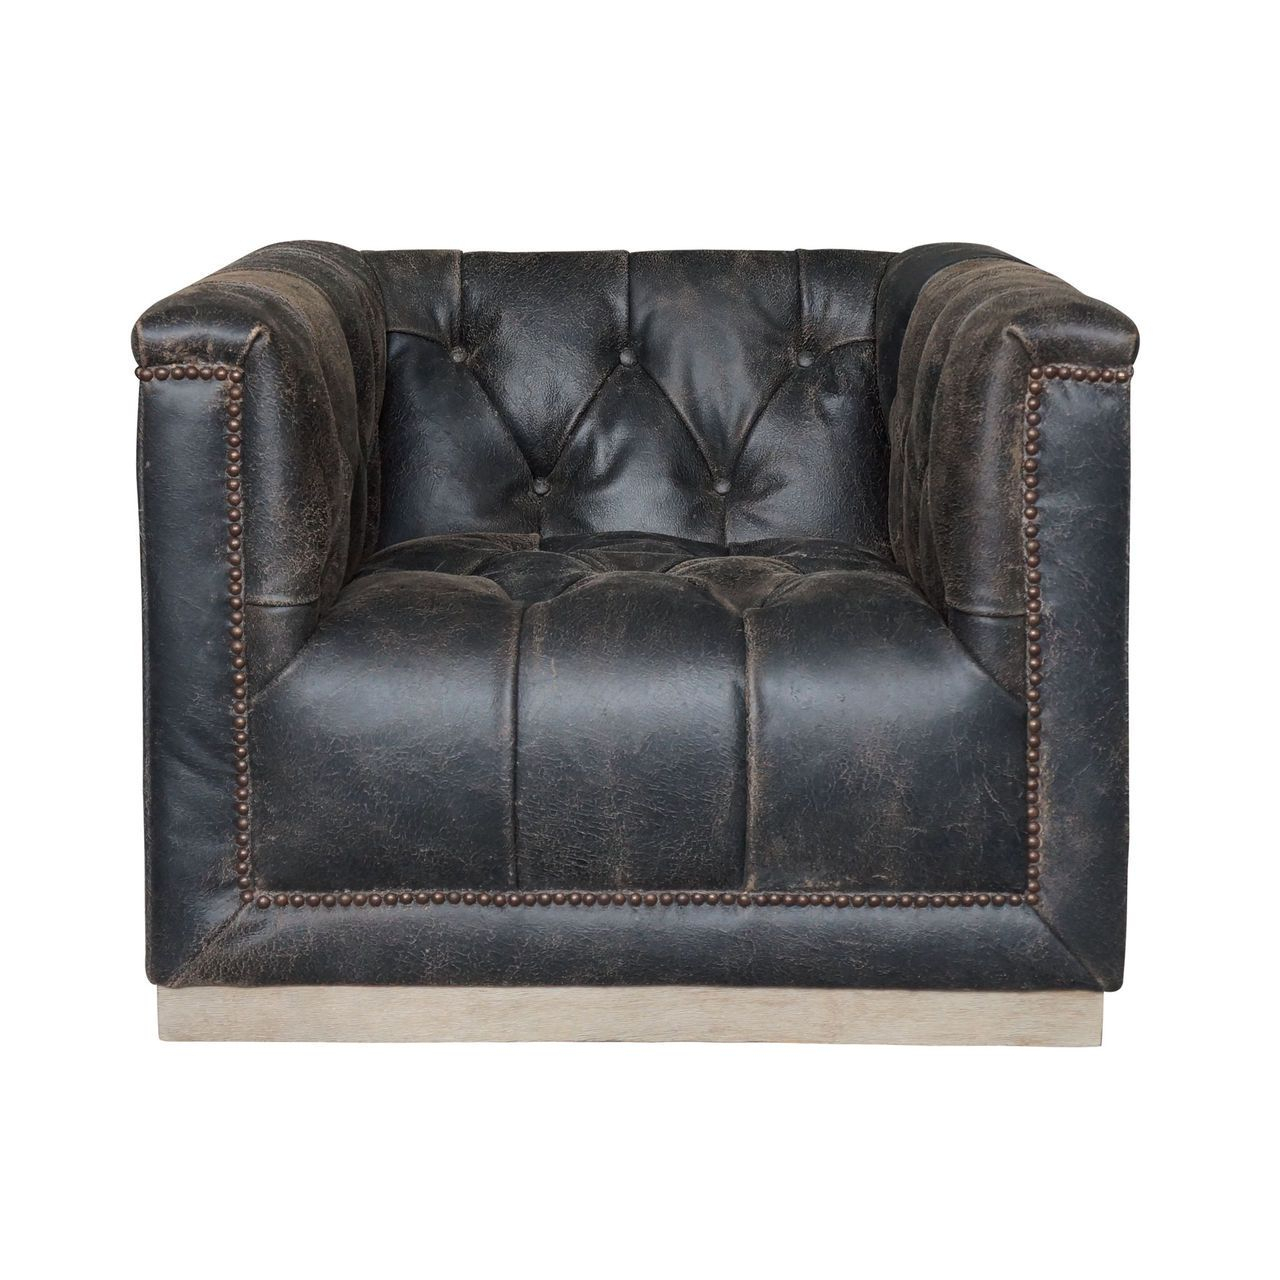 Maxx Distressed Black Leather Swivel Club Chair | Interior Ideas Throughout Loft Smokey Swivel Accent Chairs (Image 14 of 20)